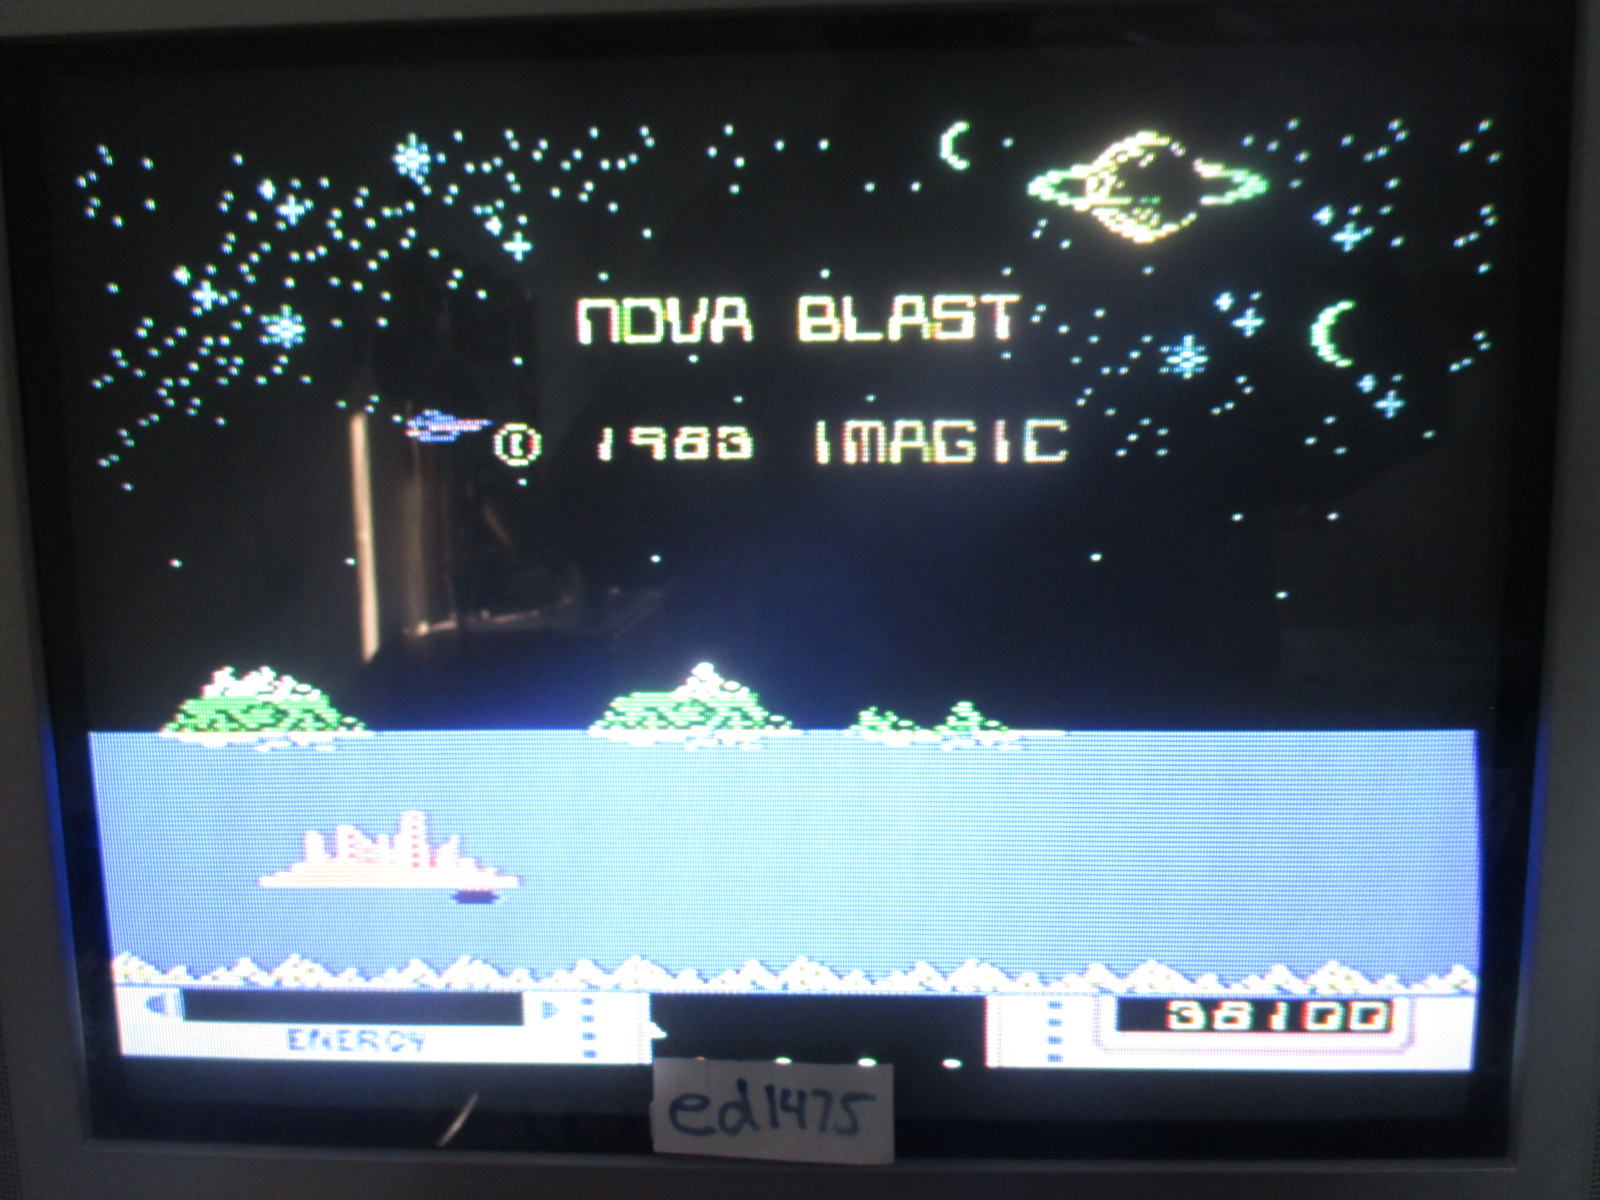 ed1475: Nova Blast (Colecovision) 38,100 points on 2014-06-24 21:04:55